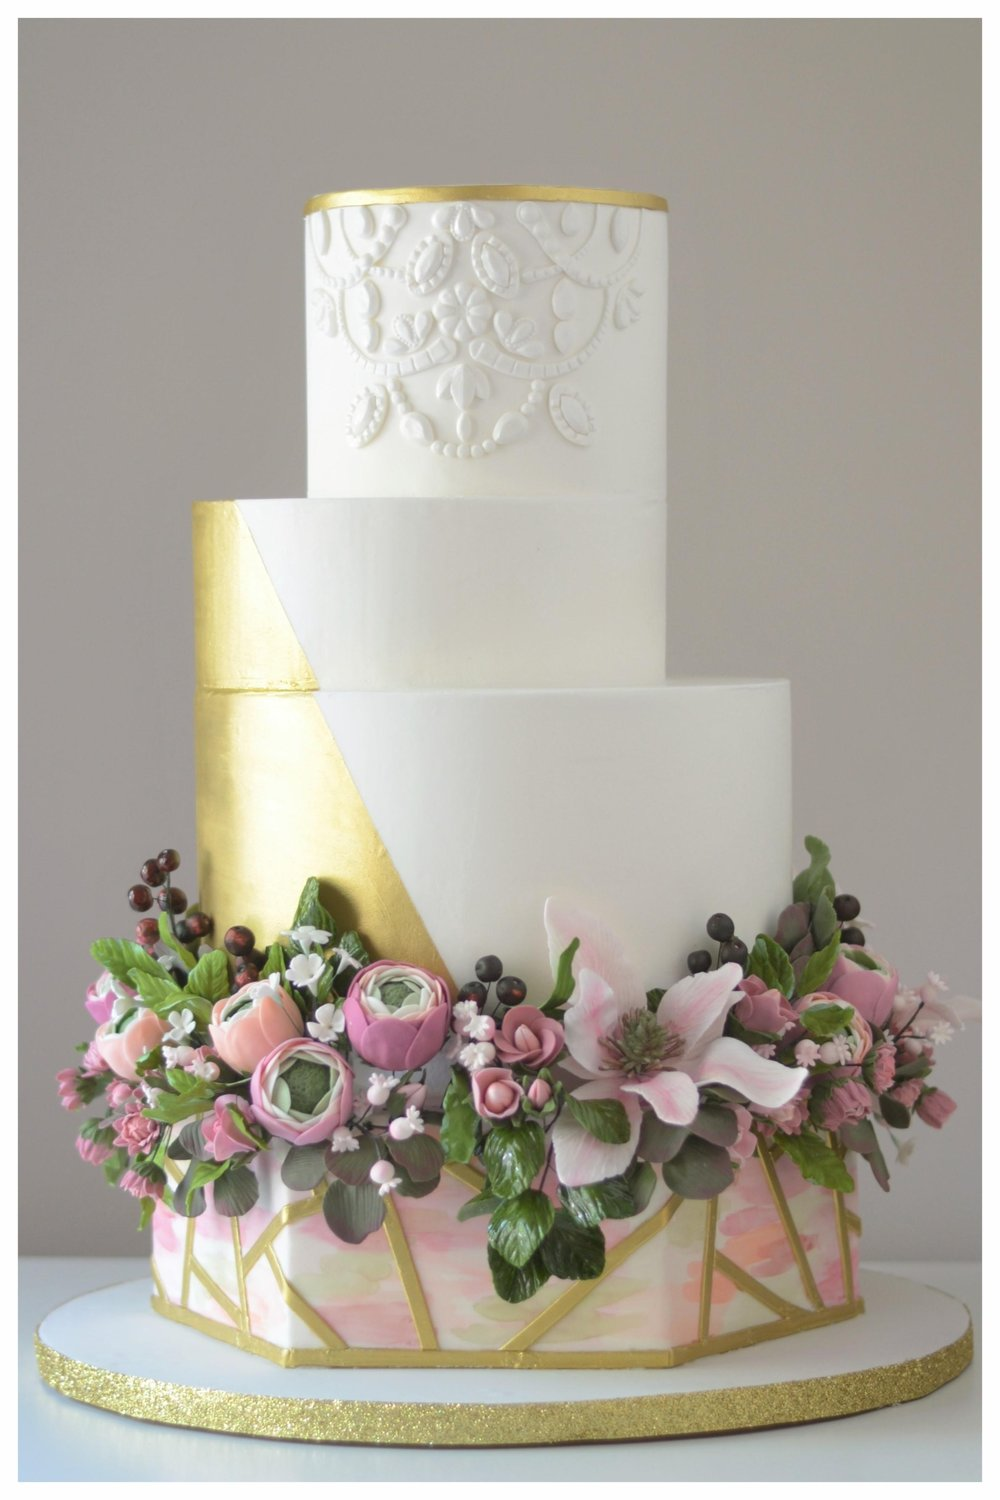 bloom cakery gold floral cake